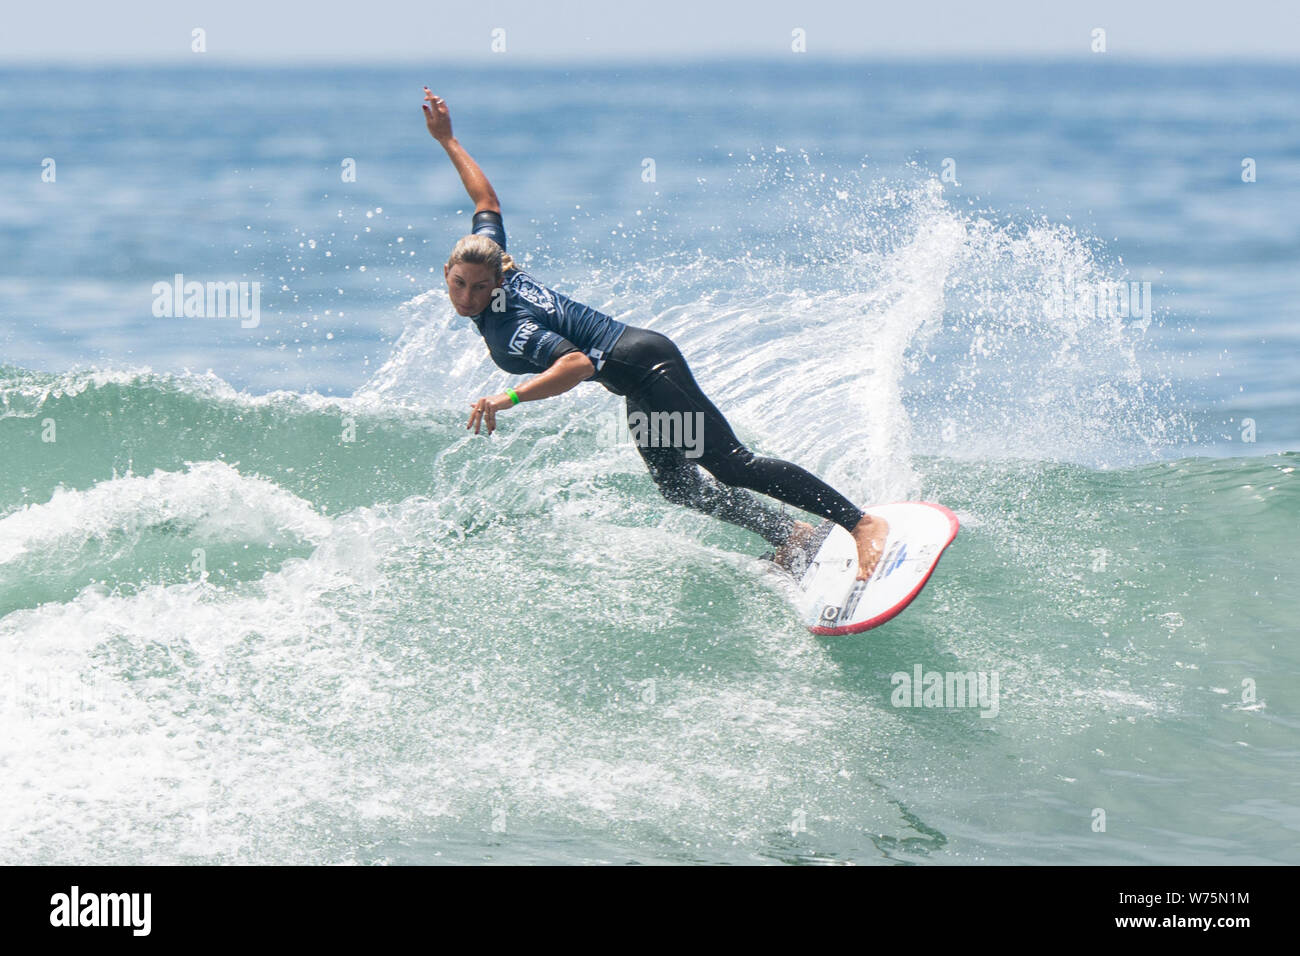 Orange County, USA. 4th Aug, 2019. Sage Erickson of the United States competes during the women's final of Vans US Open of Surfing at Huntington Beach, California, the United States, on Aug. 4, 2019. Credit: Qian Weizhong/Xinhua/Alamy Live News Stock Photo